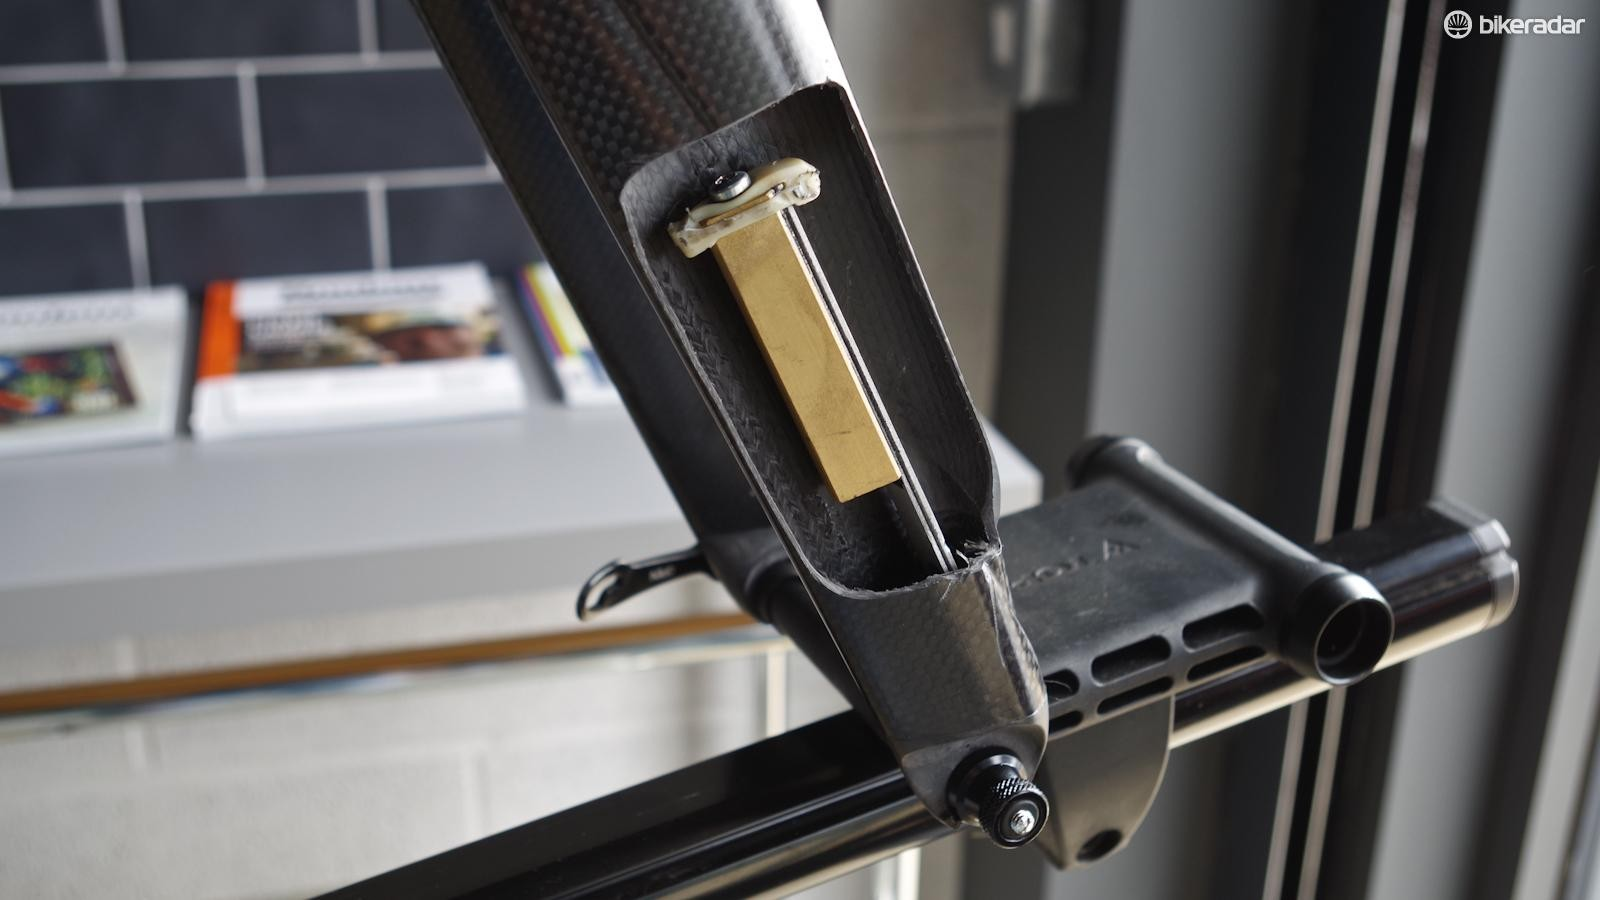 Time's Aktiv fork incorporates a tuned mass damper to absorb road vibrations